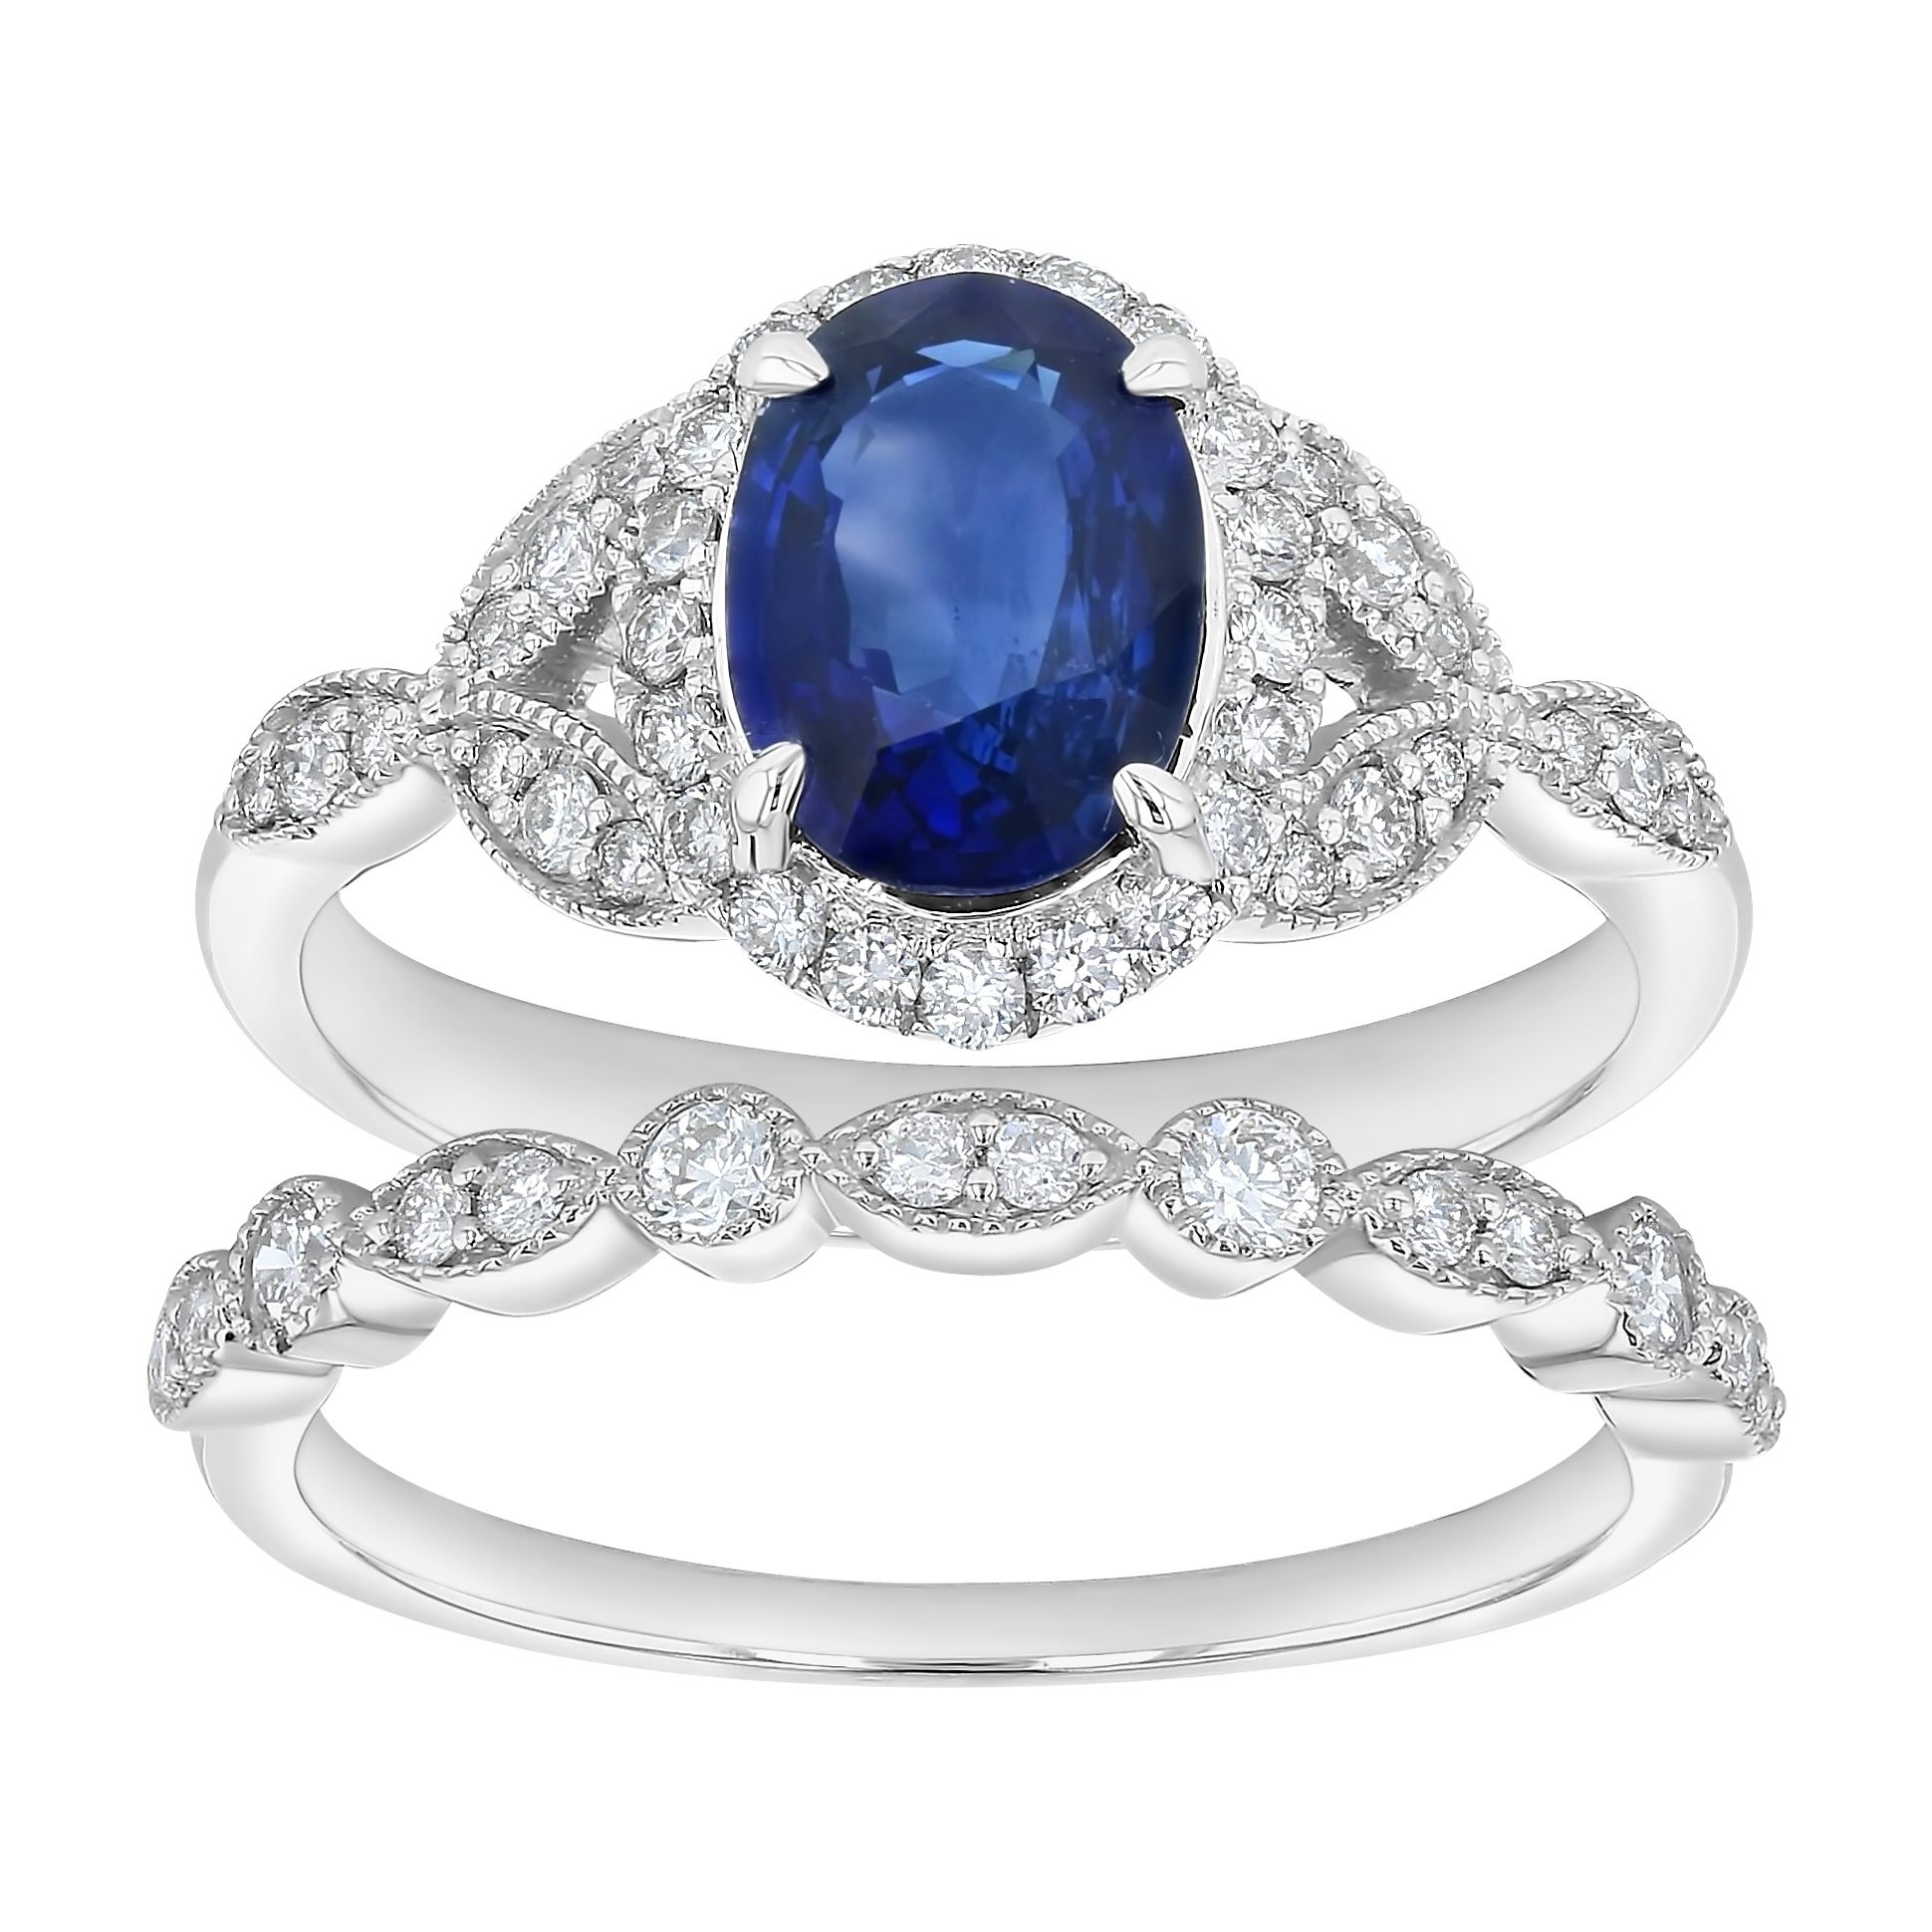 Shop 14k White Gold 1 3/4ct Diamonds and Oval Blue Sapphire Vintage ...